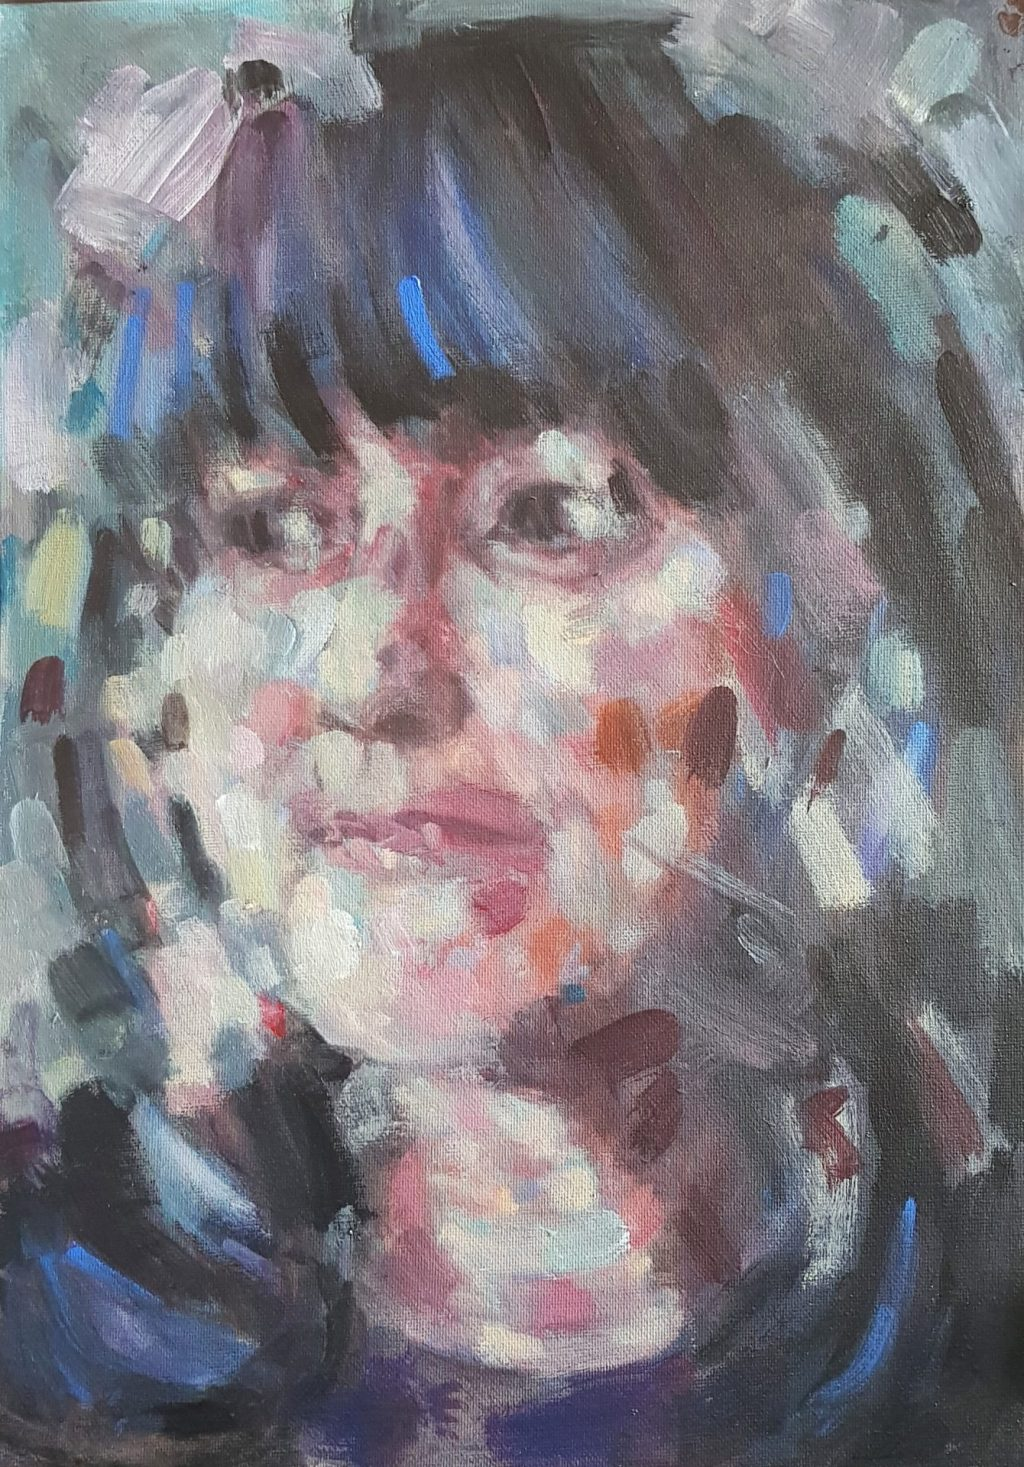 Richard-Dwyer-Woman-and-dog-Acrylic-on-Canvas, at Pie Factory Margate